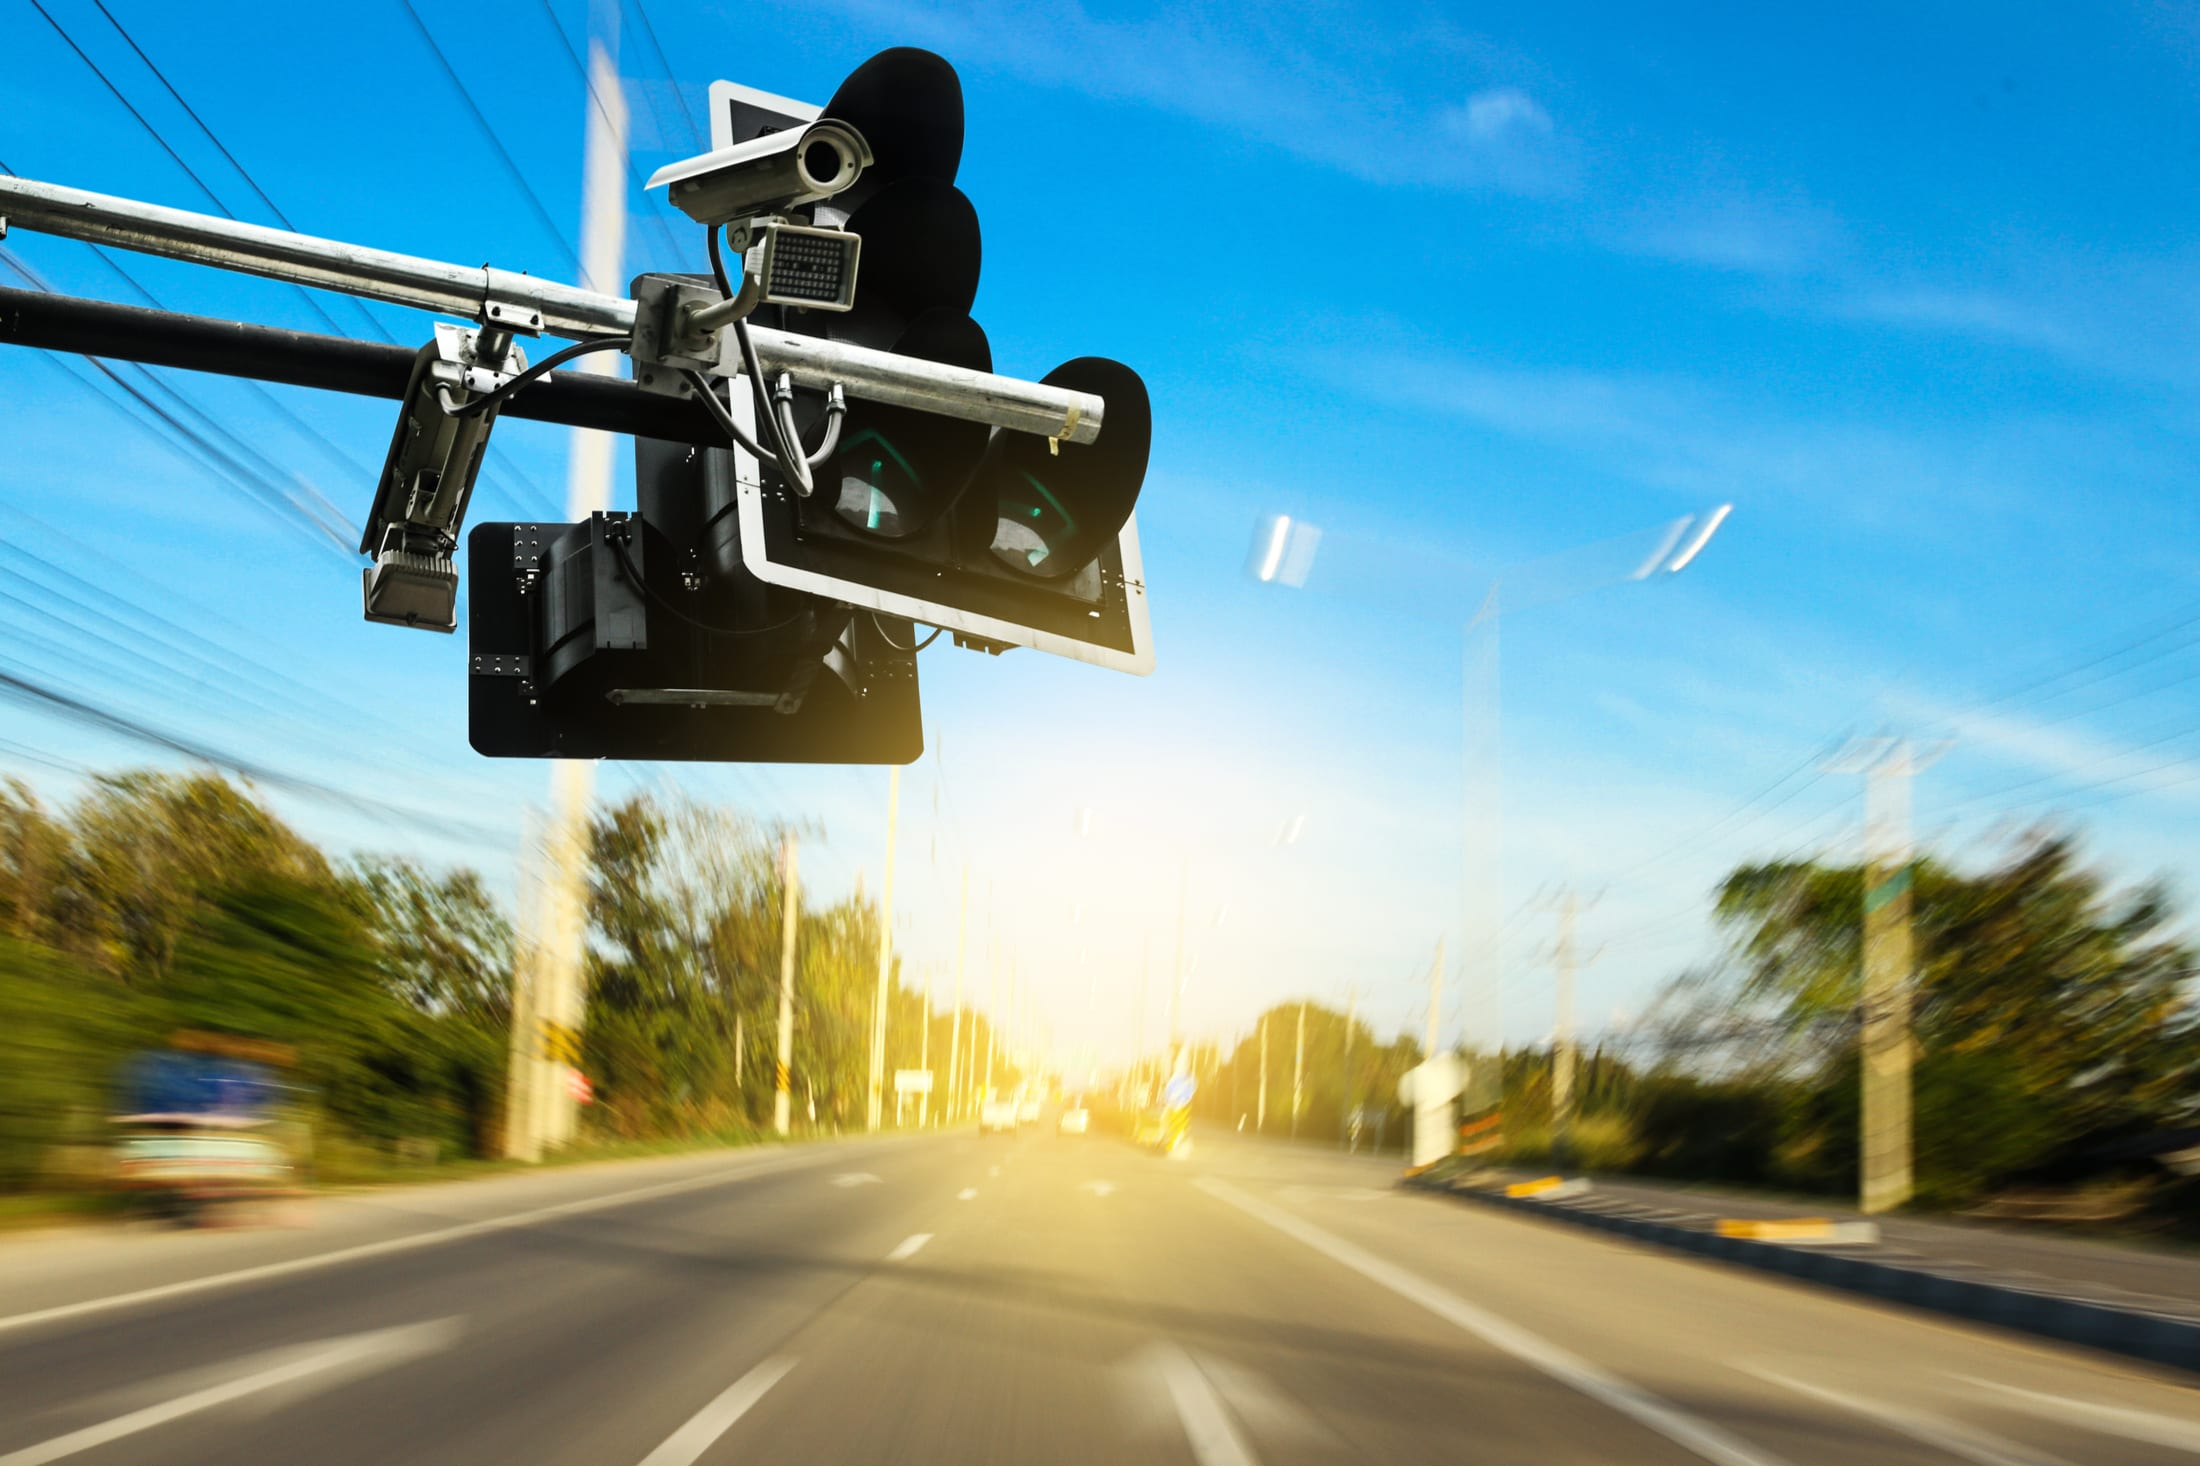 how to fight a camera speeding ticket